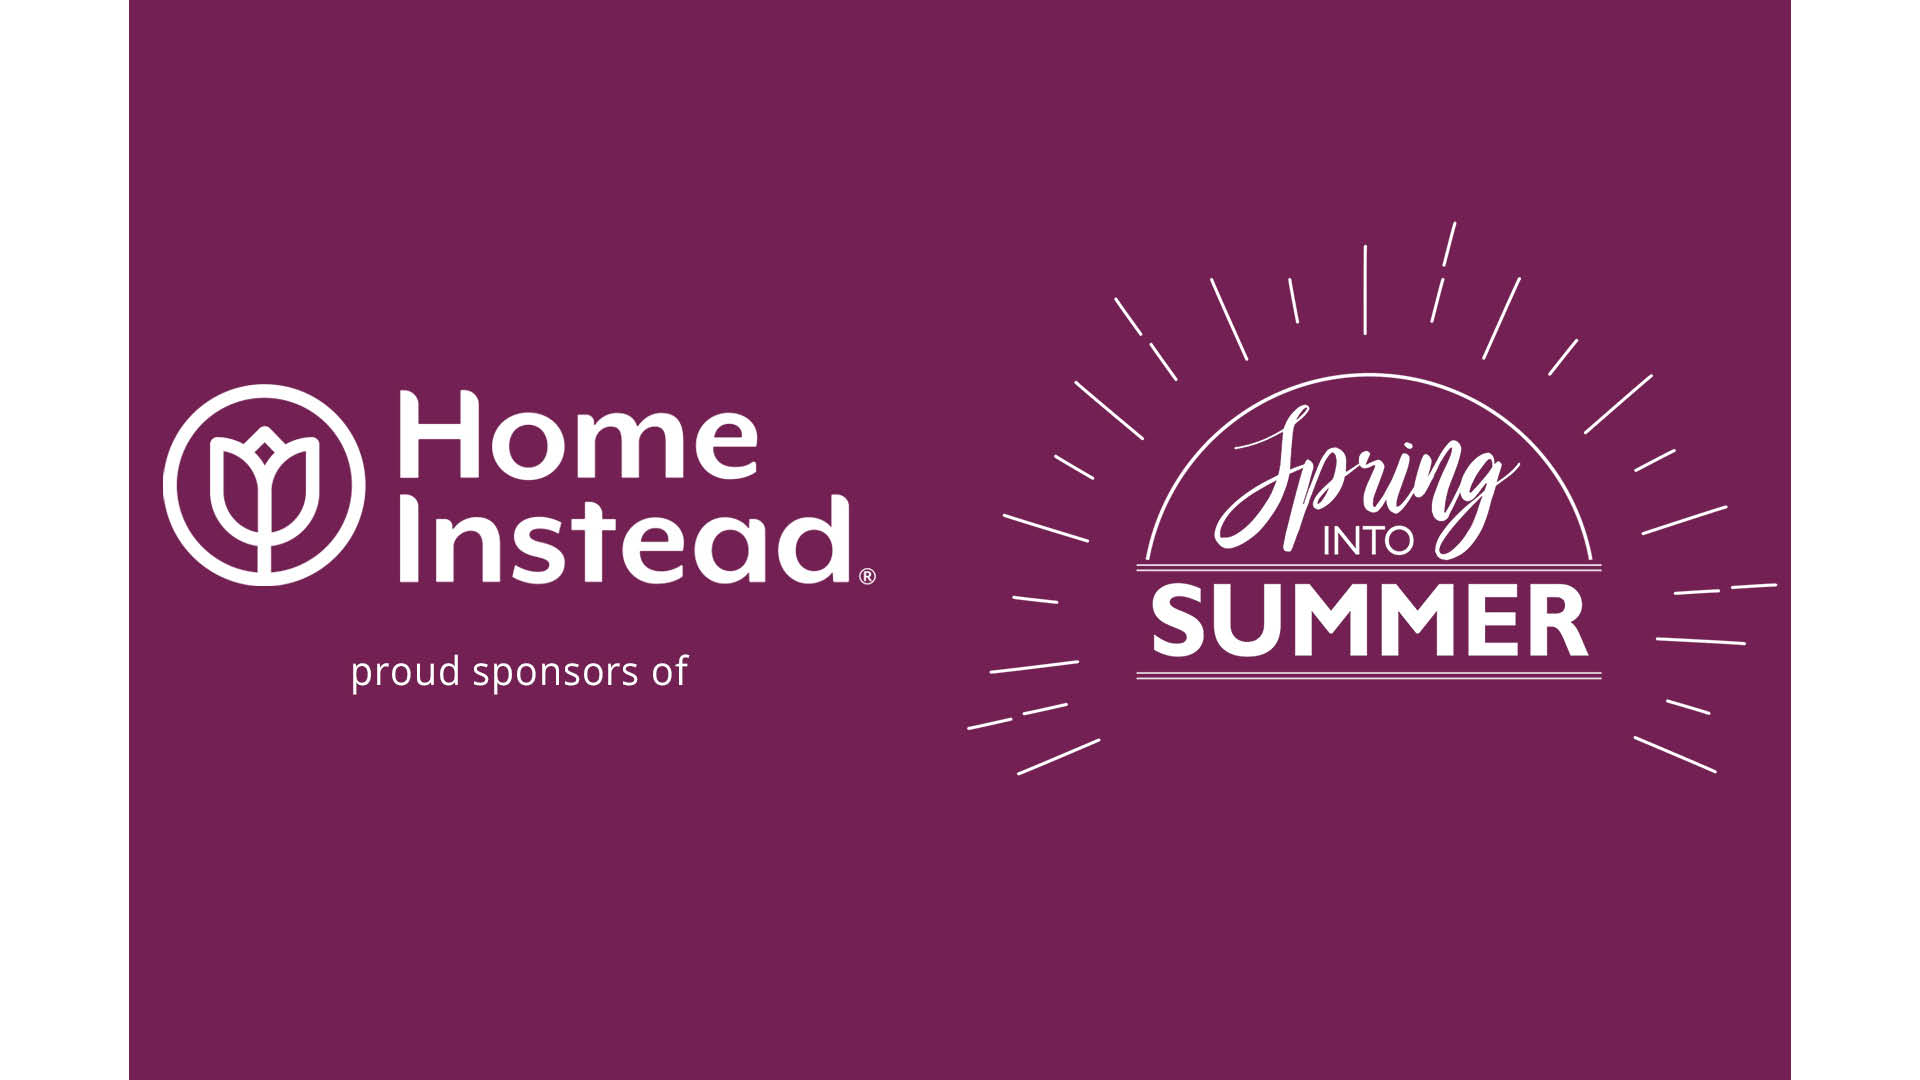 Home Instead ramps up TV presence with second sponsorship deal